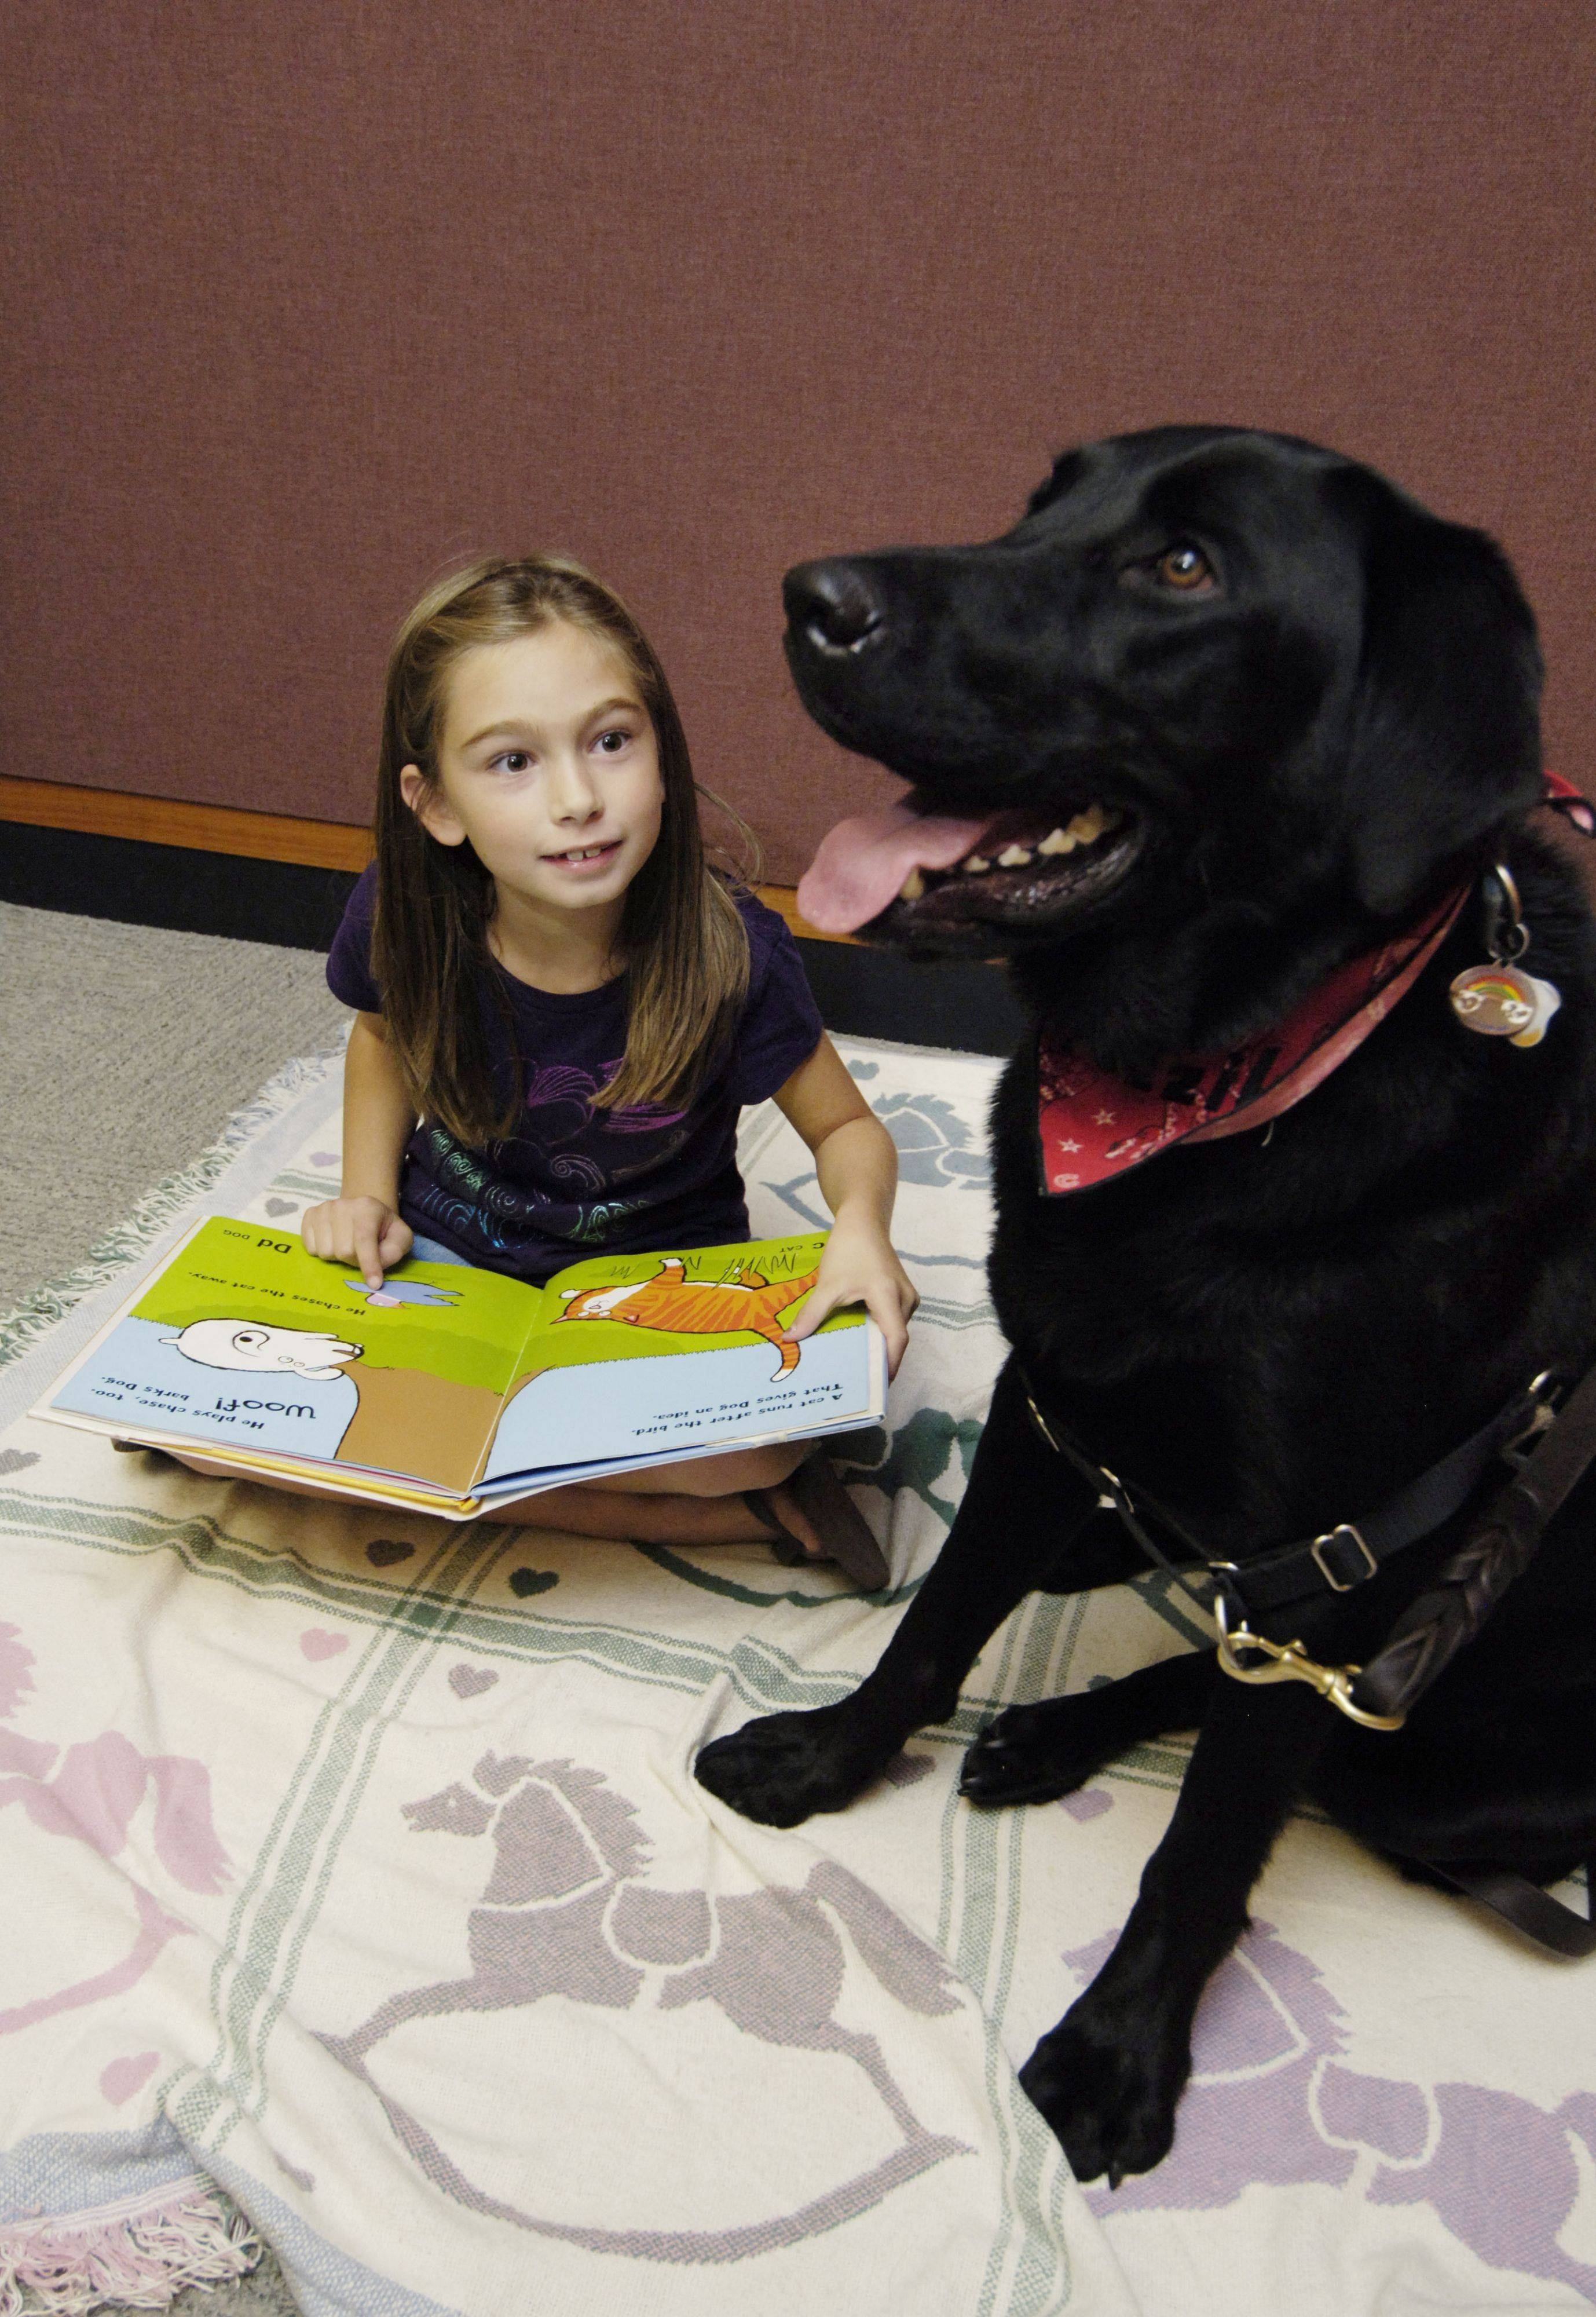 Janelle Gartz, 7, of Mount Prospect reads to Fezzik, a black lab and trained therapy dog, at the Mount Prospect Public Library.